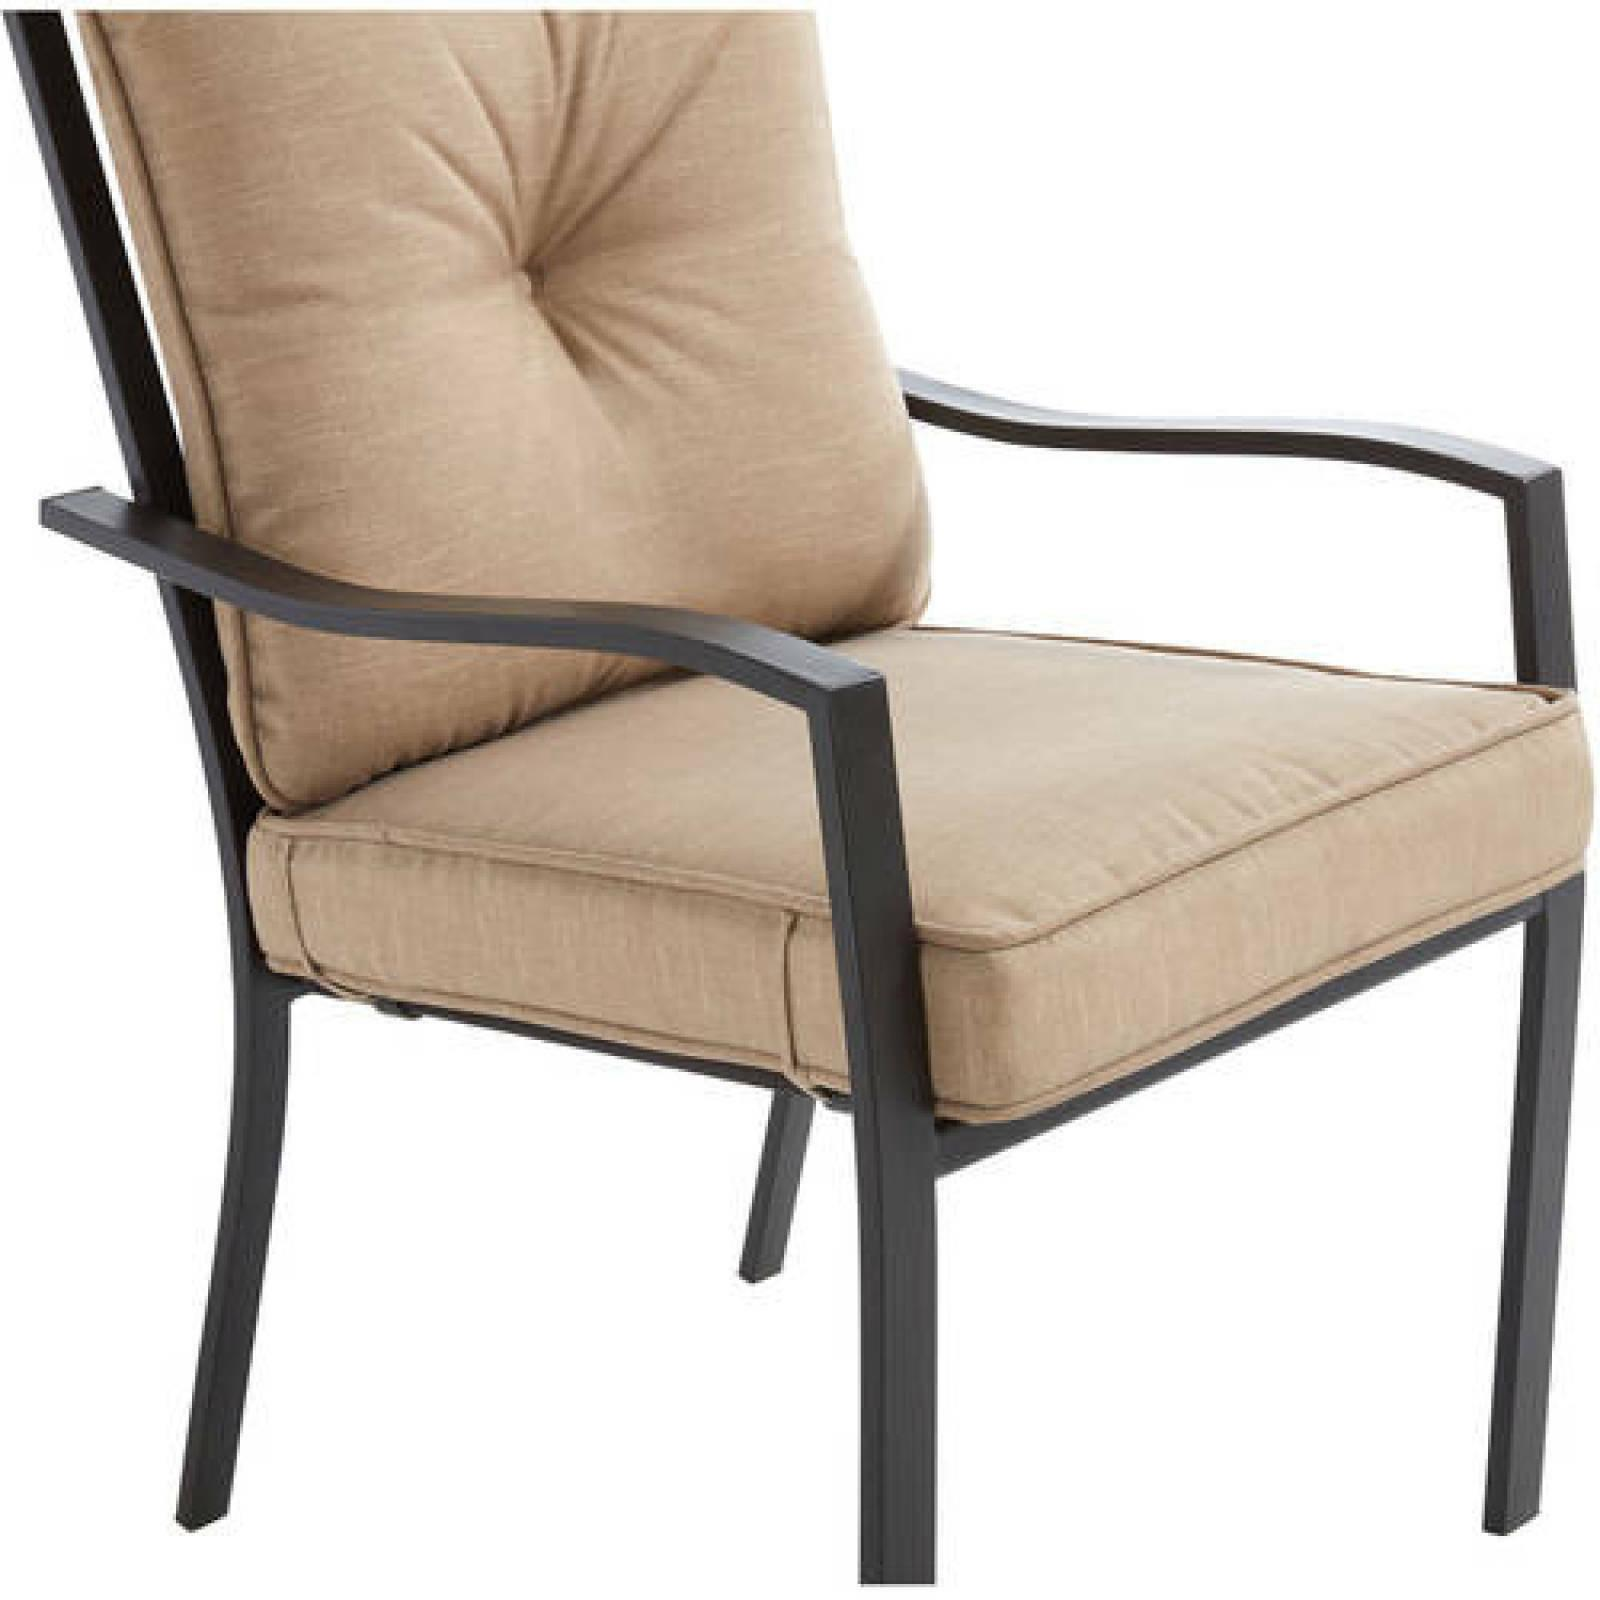 Outdoor And Chairs Clearance Piece